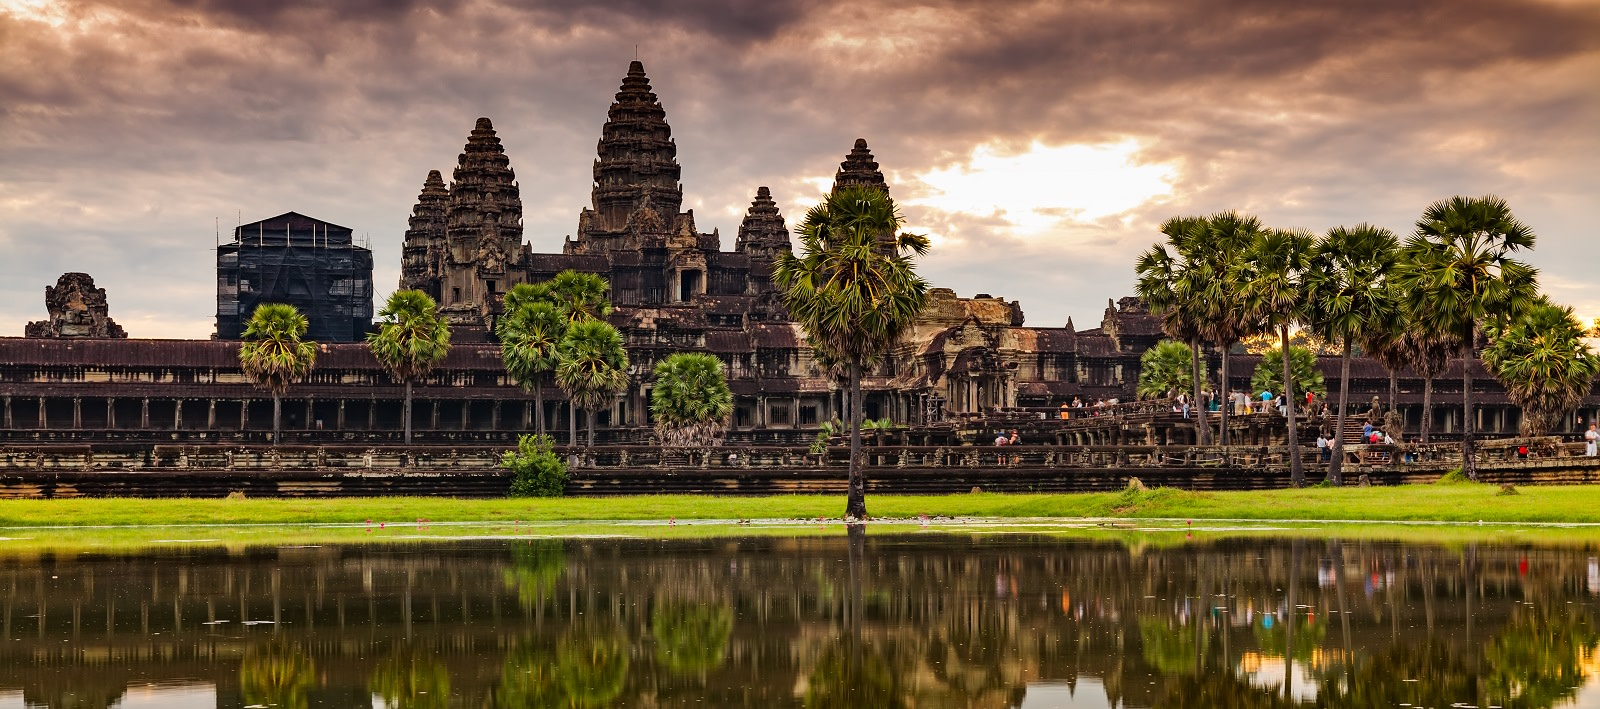 Angkor Wat, Cambodia - Things to do in Southeast Asia